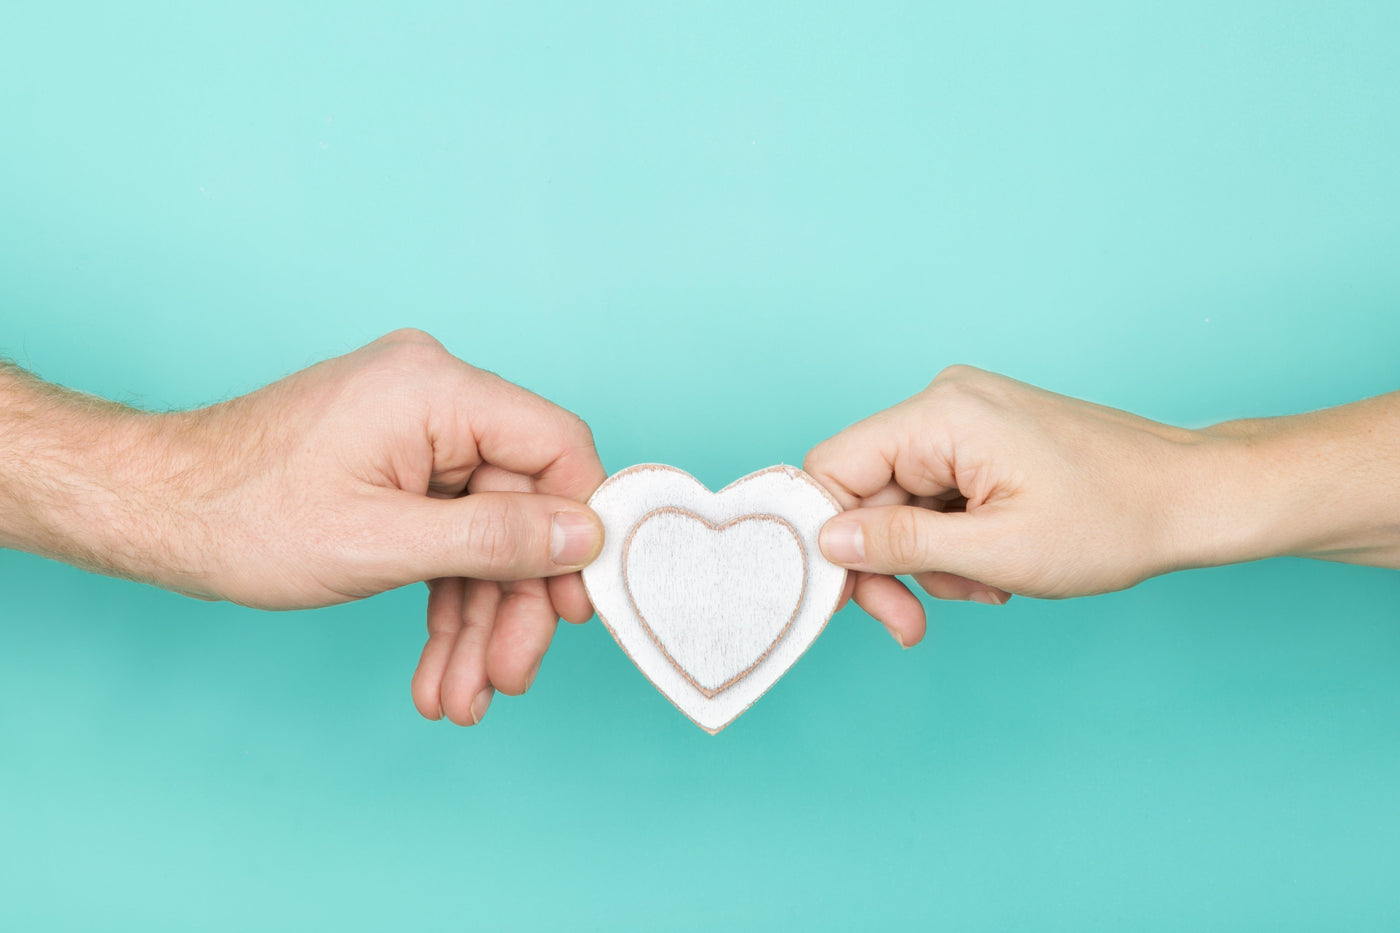 Hand drawn stickers at Peel & Heal Studio: leave a testimonial to let us know how our stickers and products have helped in your journey! Image shows aqua background with two arms extended; holding a white wooden heart together.